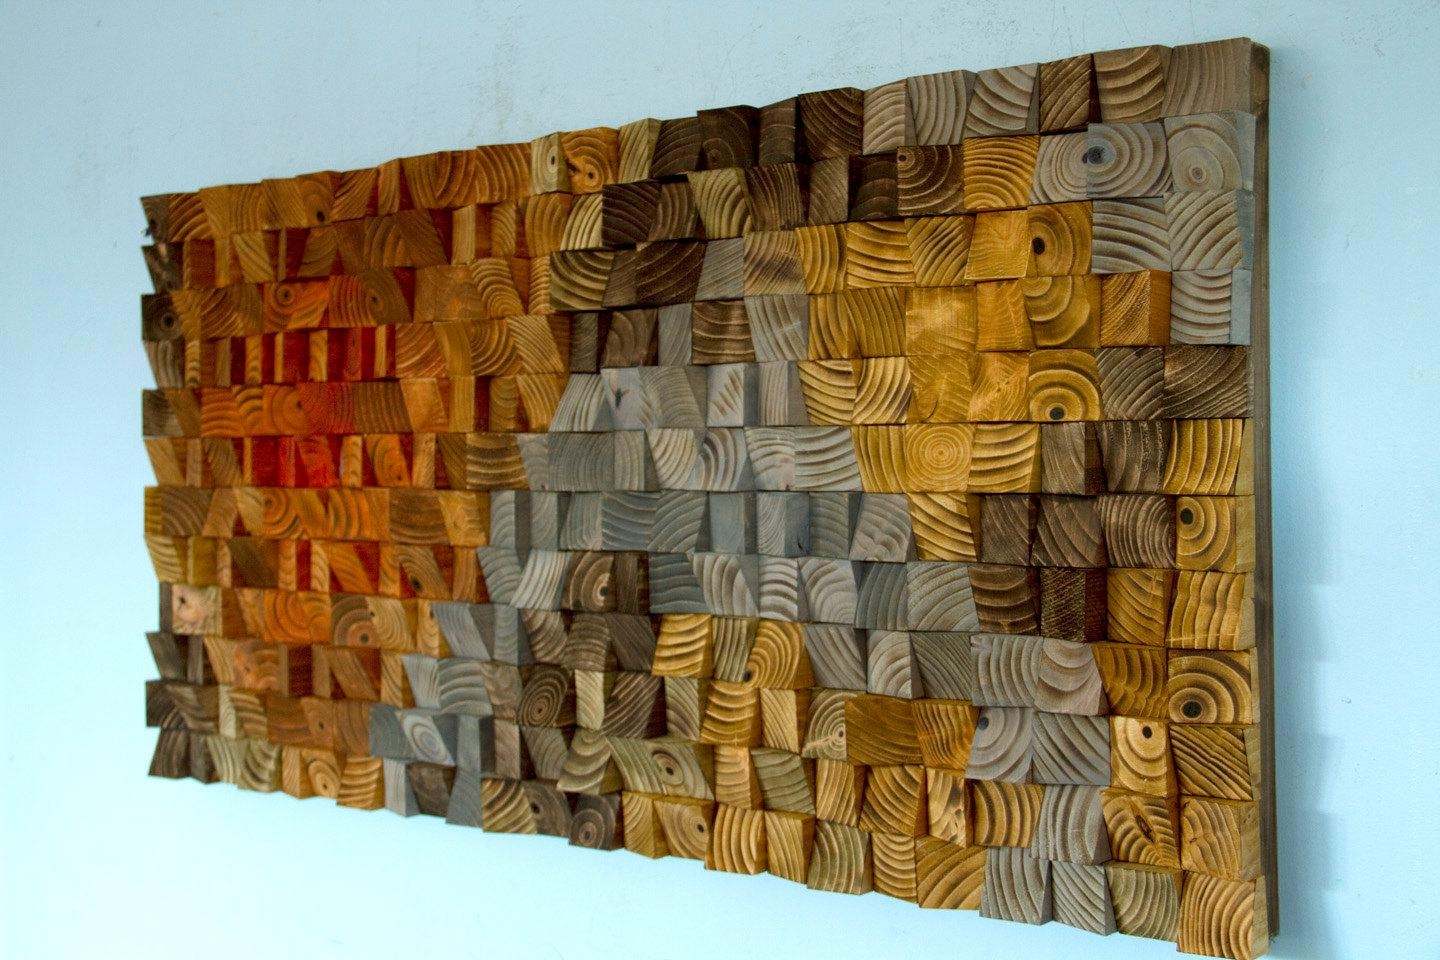 Rustic Wood Wall Art Wood Wall Sculpture Abstract Wood Art in Wall Art on Wood